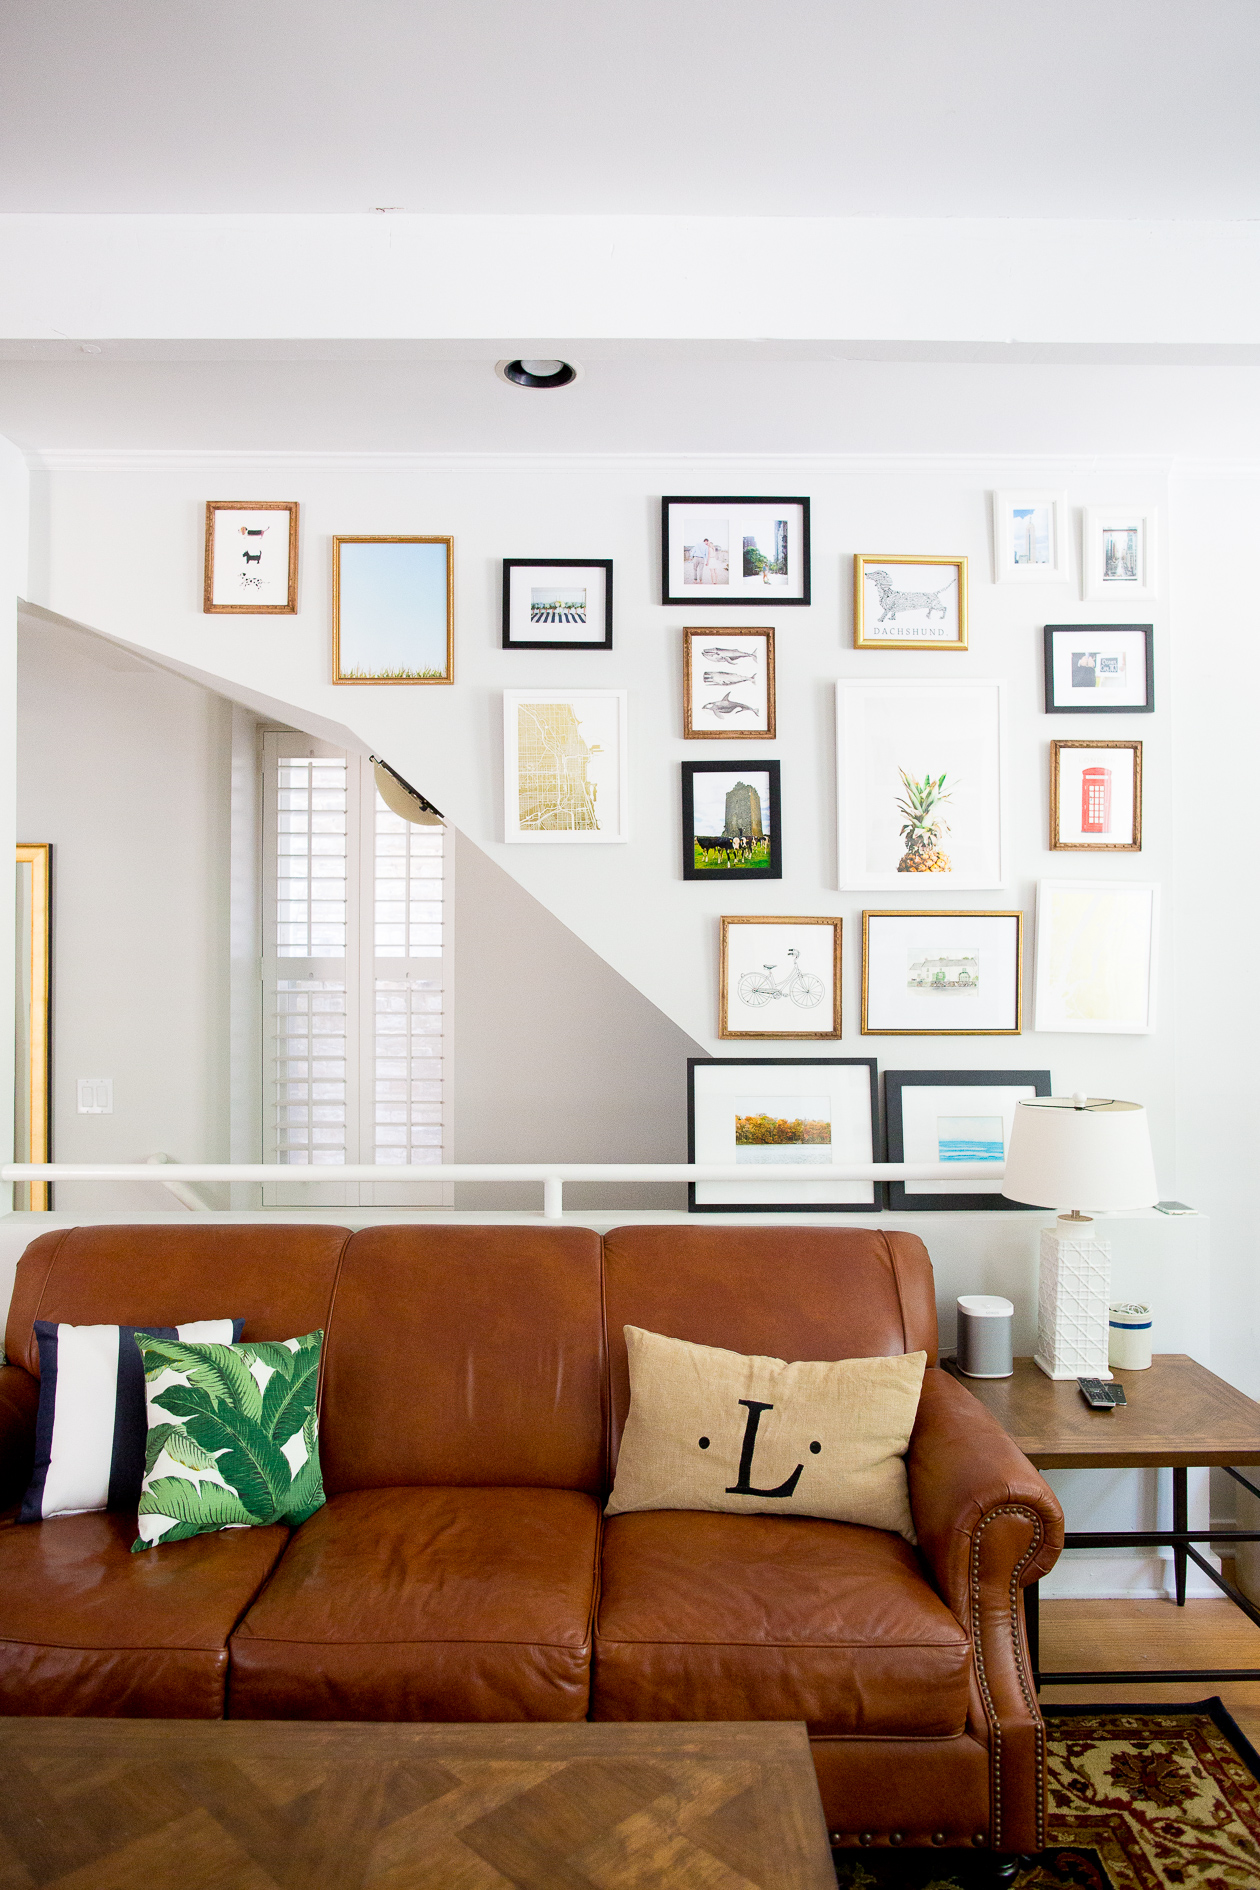 Kelly-in-the-City-Preppy-Living-Room-54